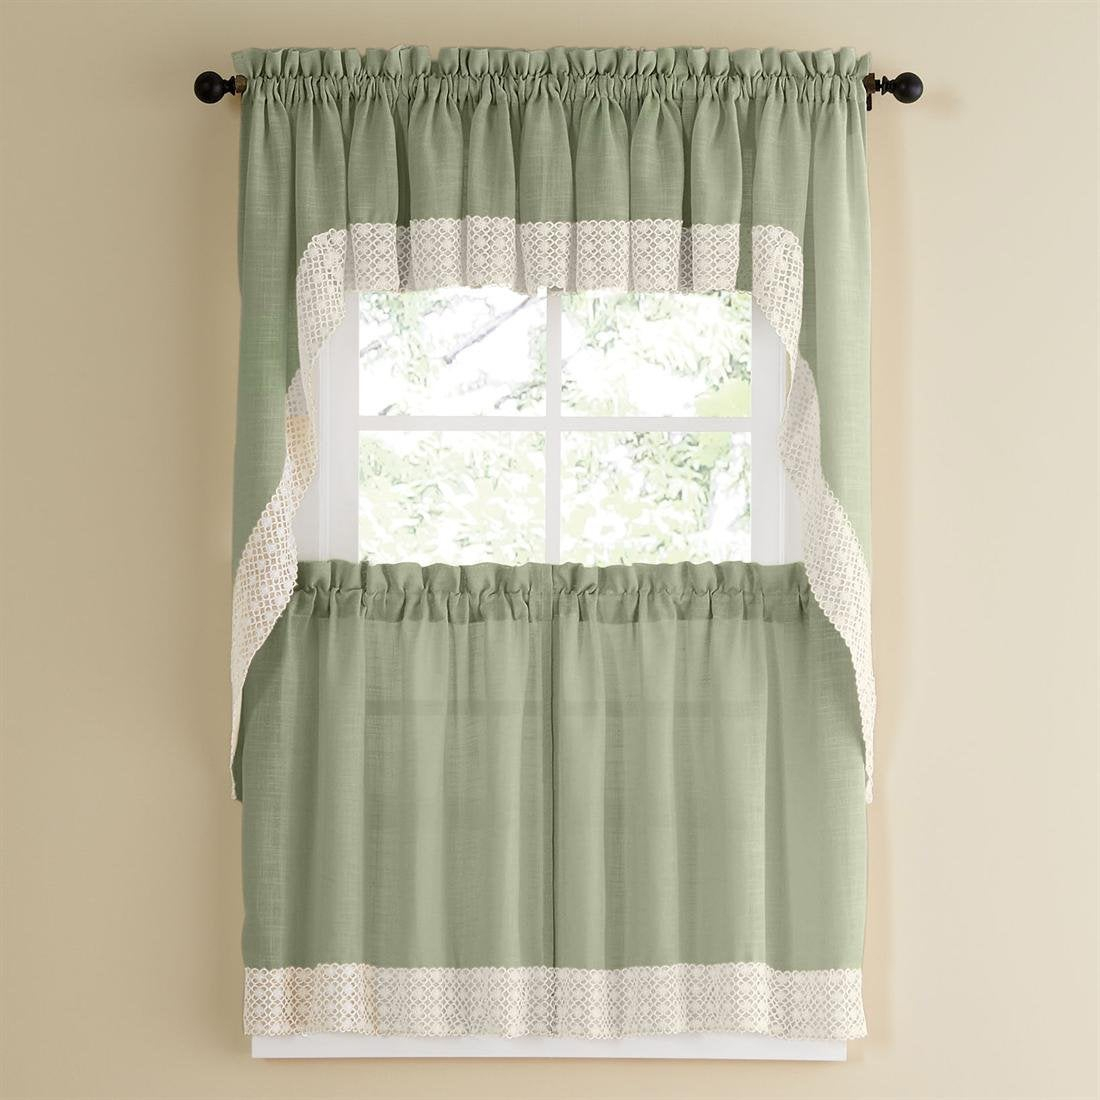 Sage Country Style Curtain Parts With White Daisy Lace Accent (Separates Tiers, Swags And Valances) In Cottage Ivy Curtain Tiers (View 19 of 20)